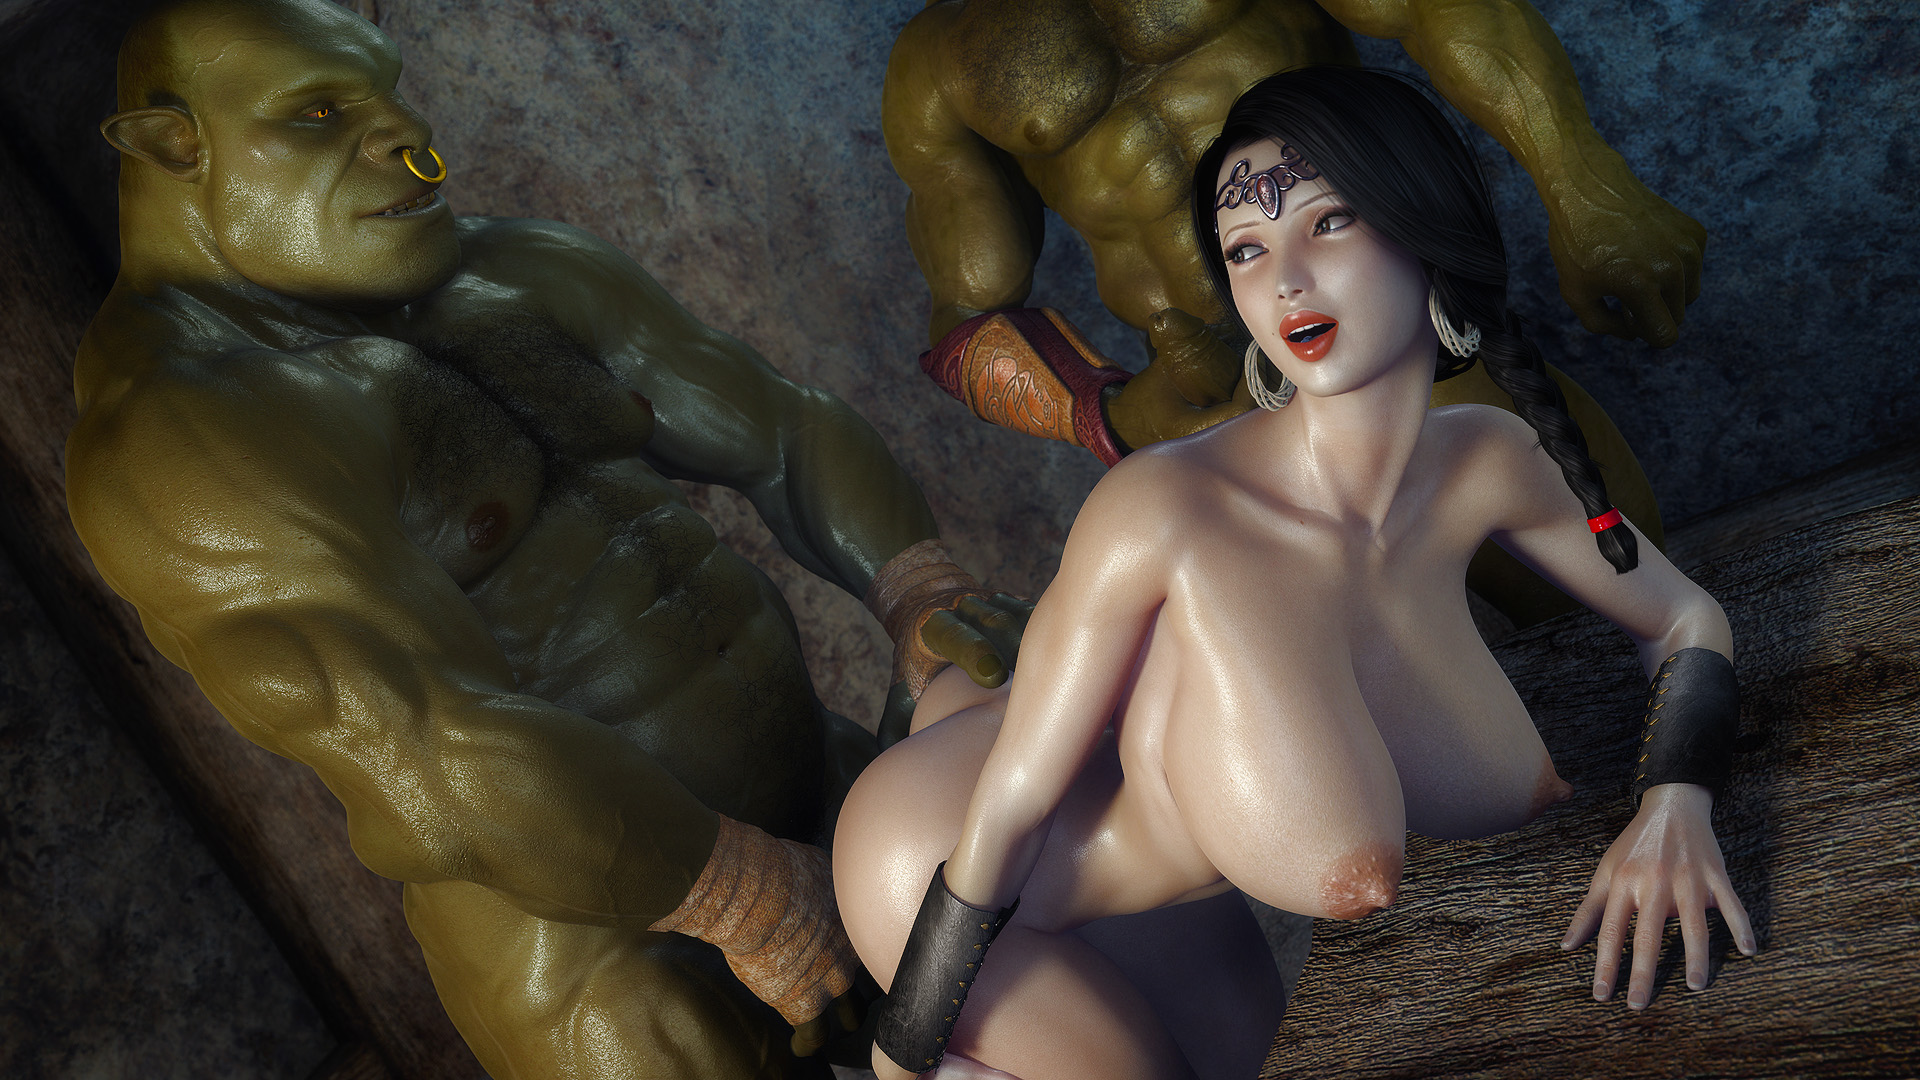 Ogre elf erotic short stories adult pic